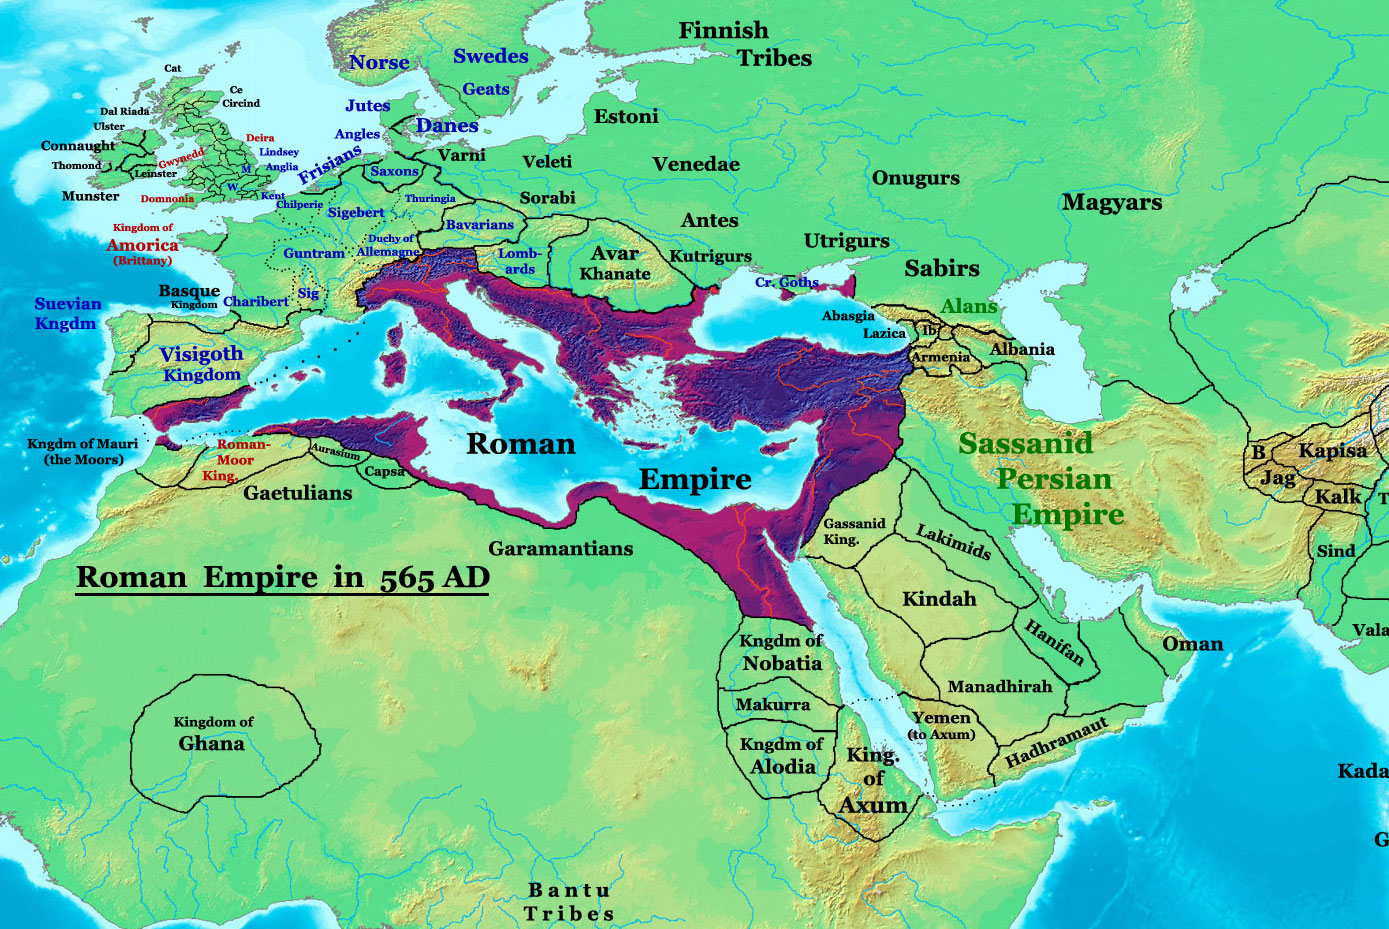 Byzantine Empire At Its Greatest Extent Ca 565